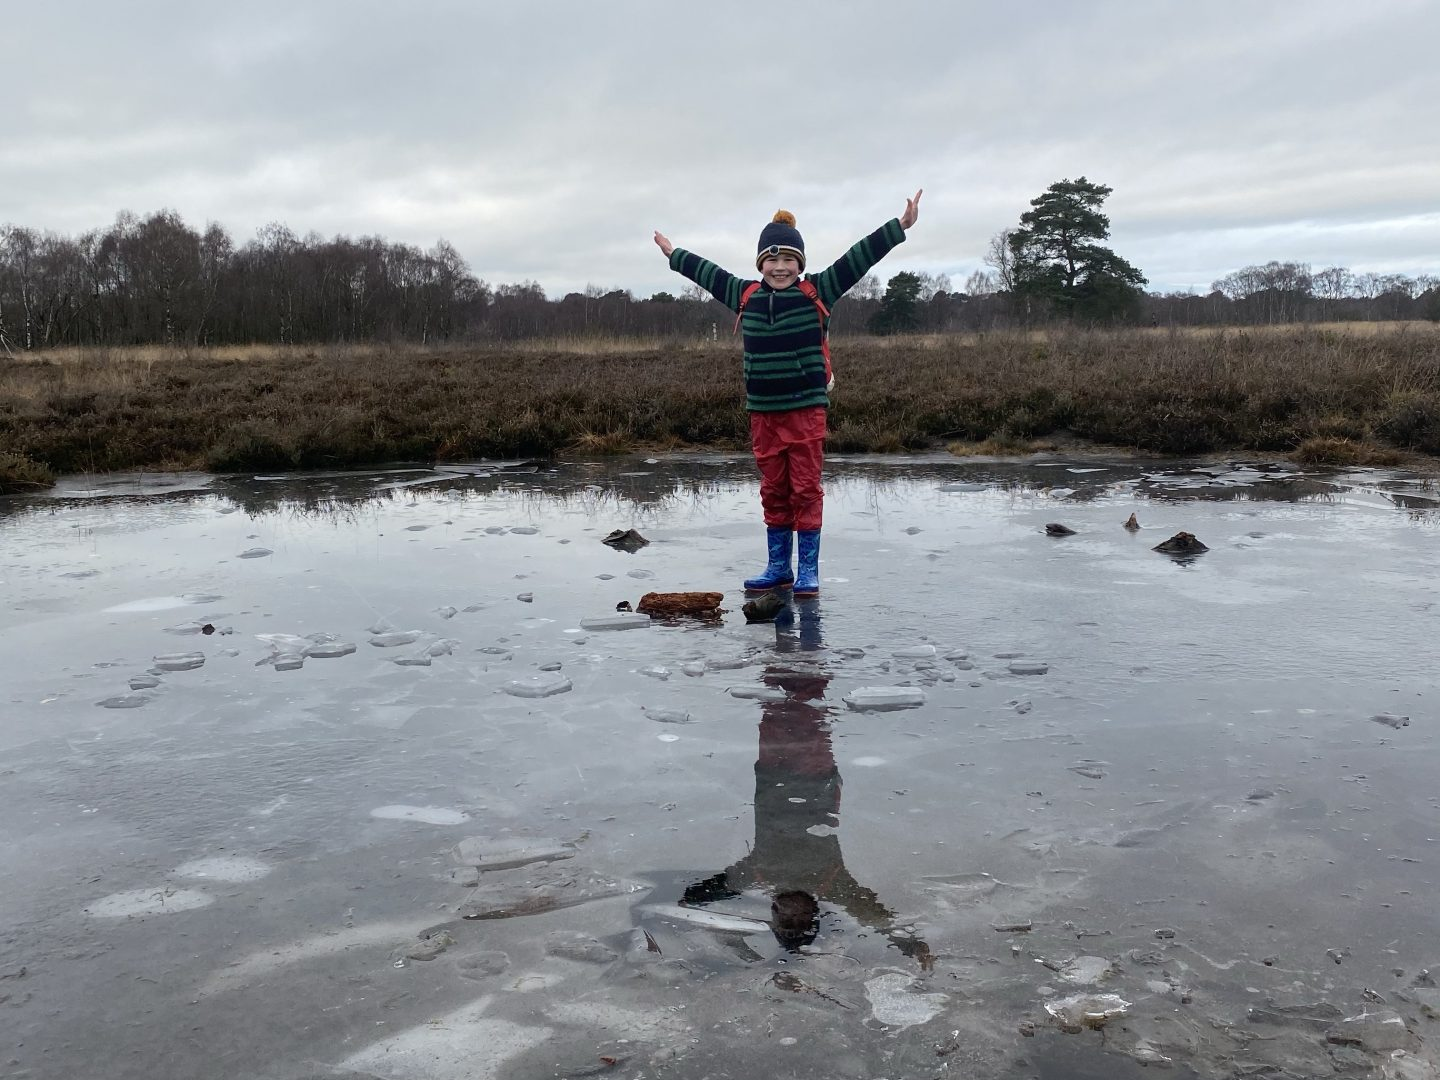 A boy standing on the ice